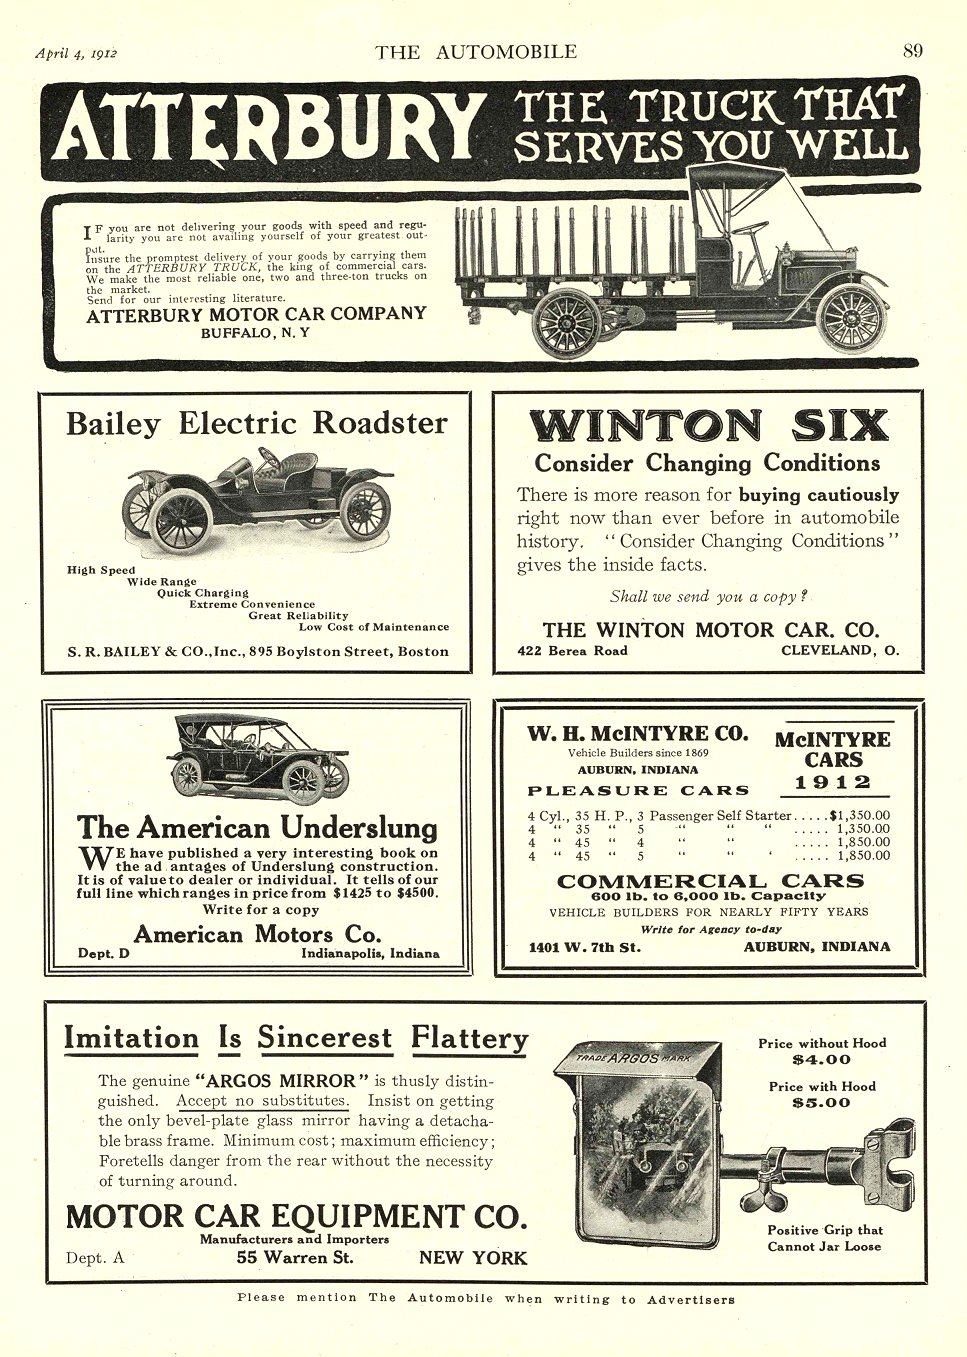 1912 4 4 BAILEY Electric Bailey Electric Roadster S. R. BAILEY & CO Boston, MASS THE AUTOMOBILE April 4, 1912 9″x12″ page 89